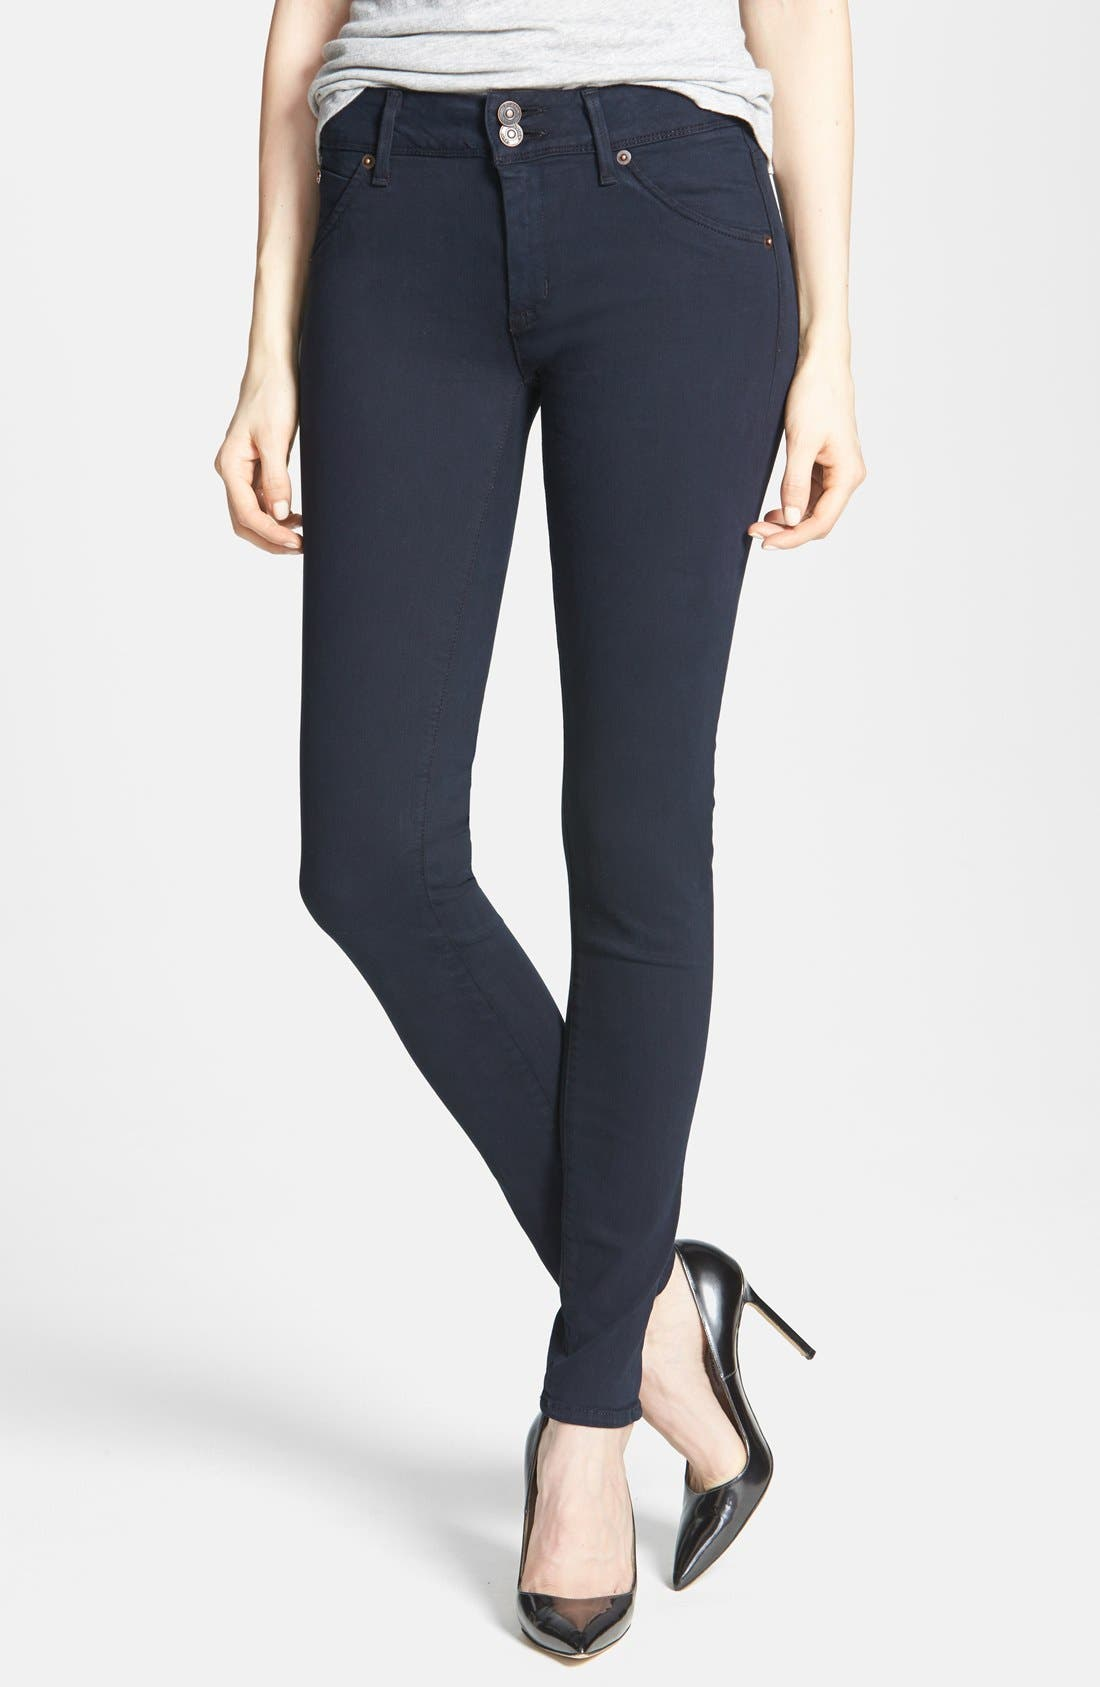 Alternate Image 1 Selected - Hudson Jeans 'Collin' Skinny Stretch Jeans (Black Iris)